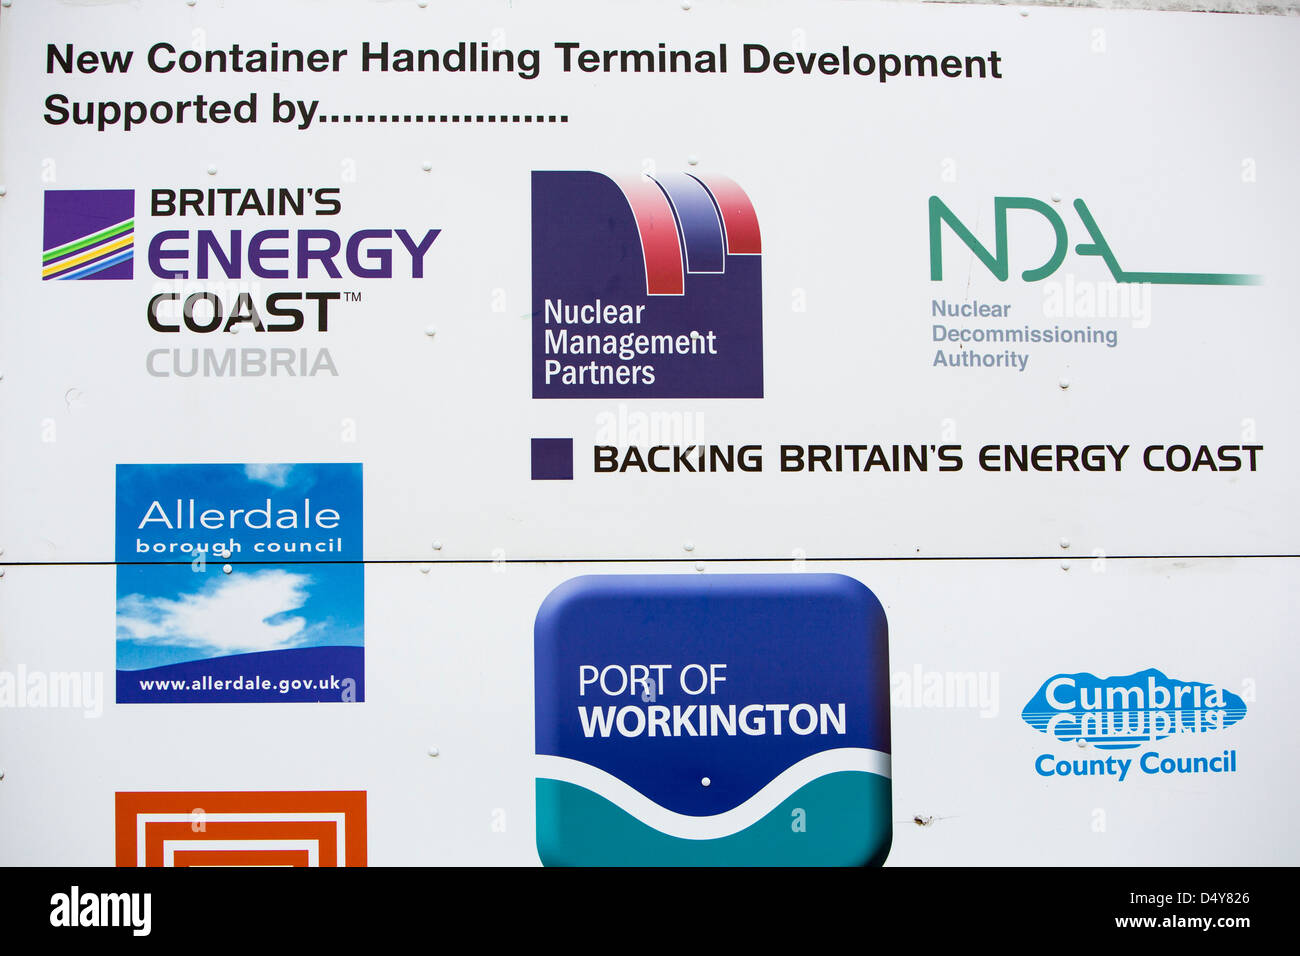 A sign for the new container handling facility in Workington port, Cumbria, UK. - Stock Image